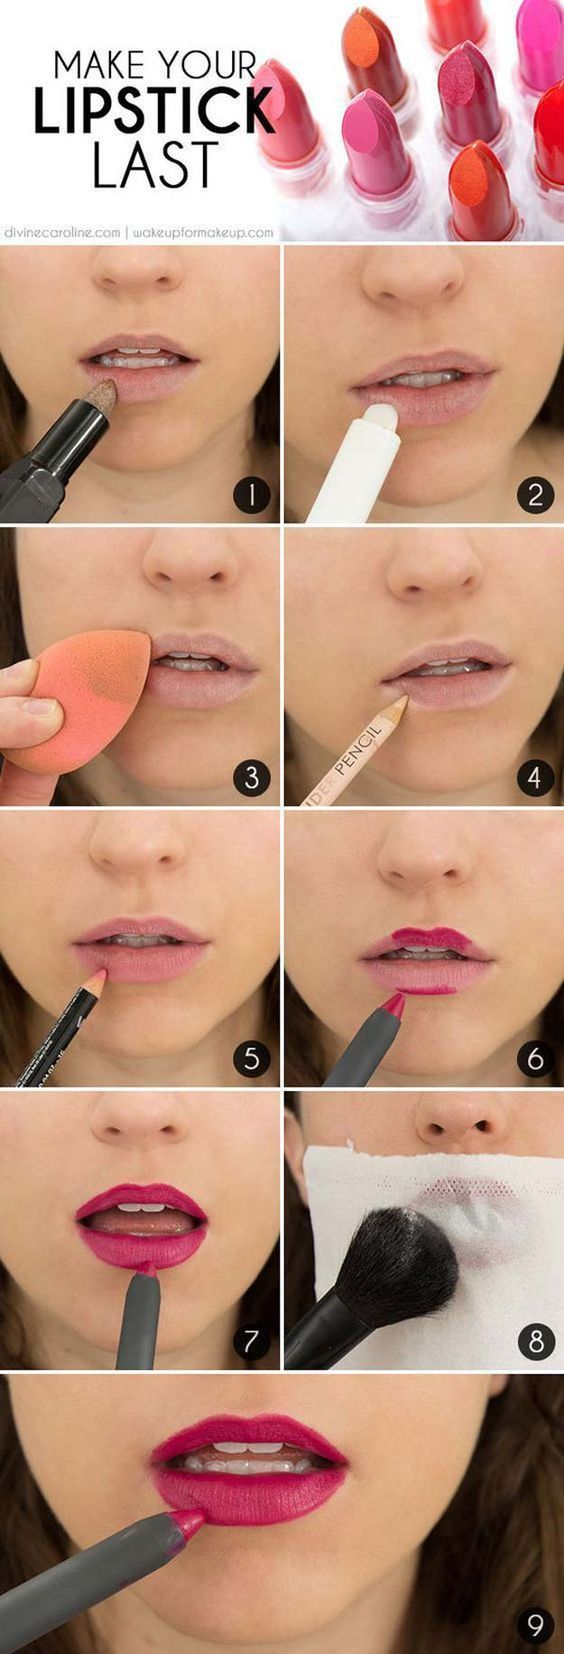 Lipstick Tutorials - Best Step by Step Makeup Tutorial How To - The Secret to Lo...